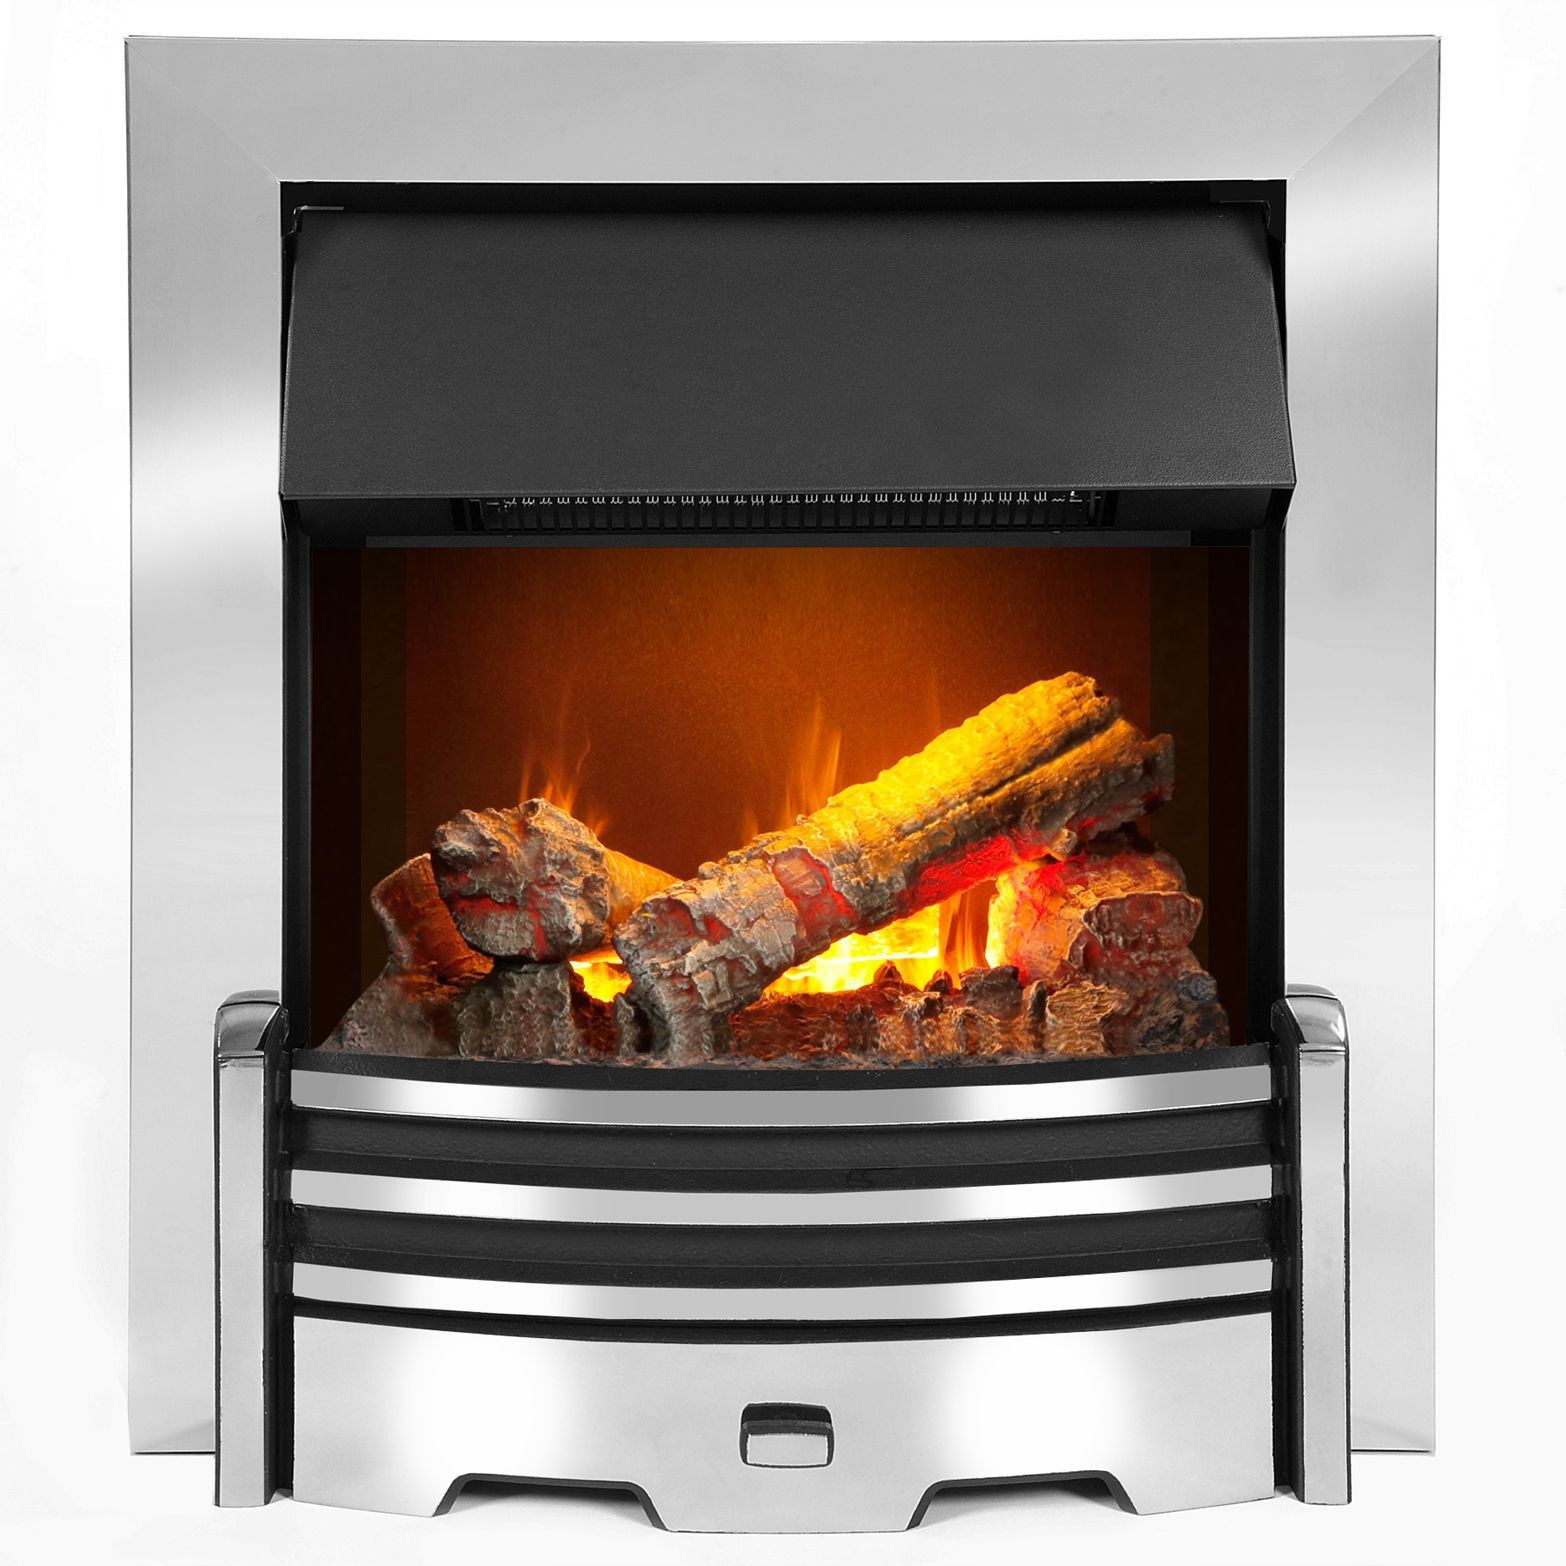 vapor face direct homepage fireplaces dvcc hearth clean vent water wmh premium mountain tahoe white fireplace sliders